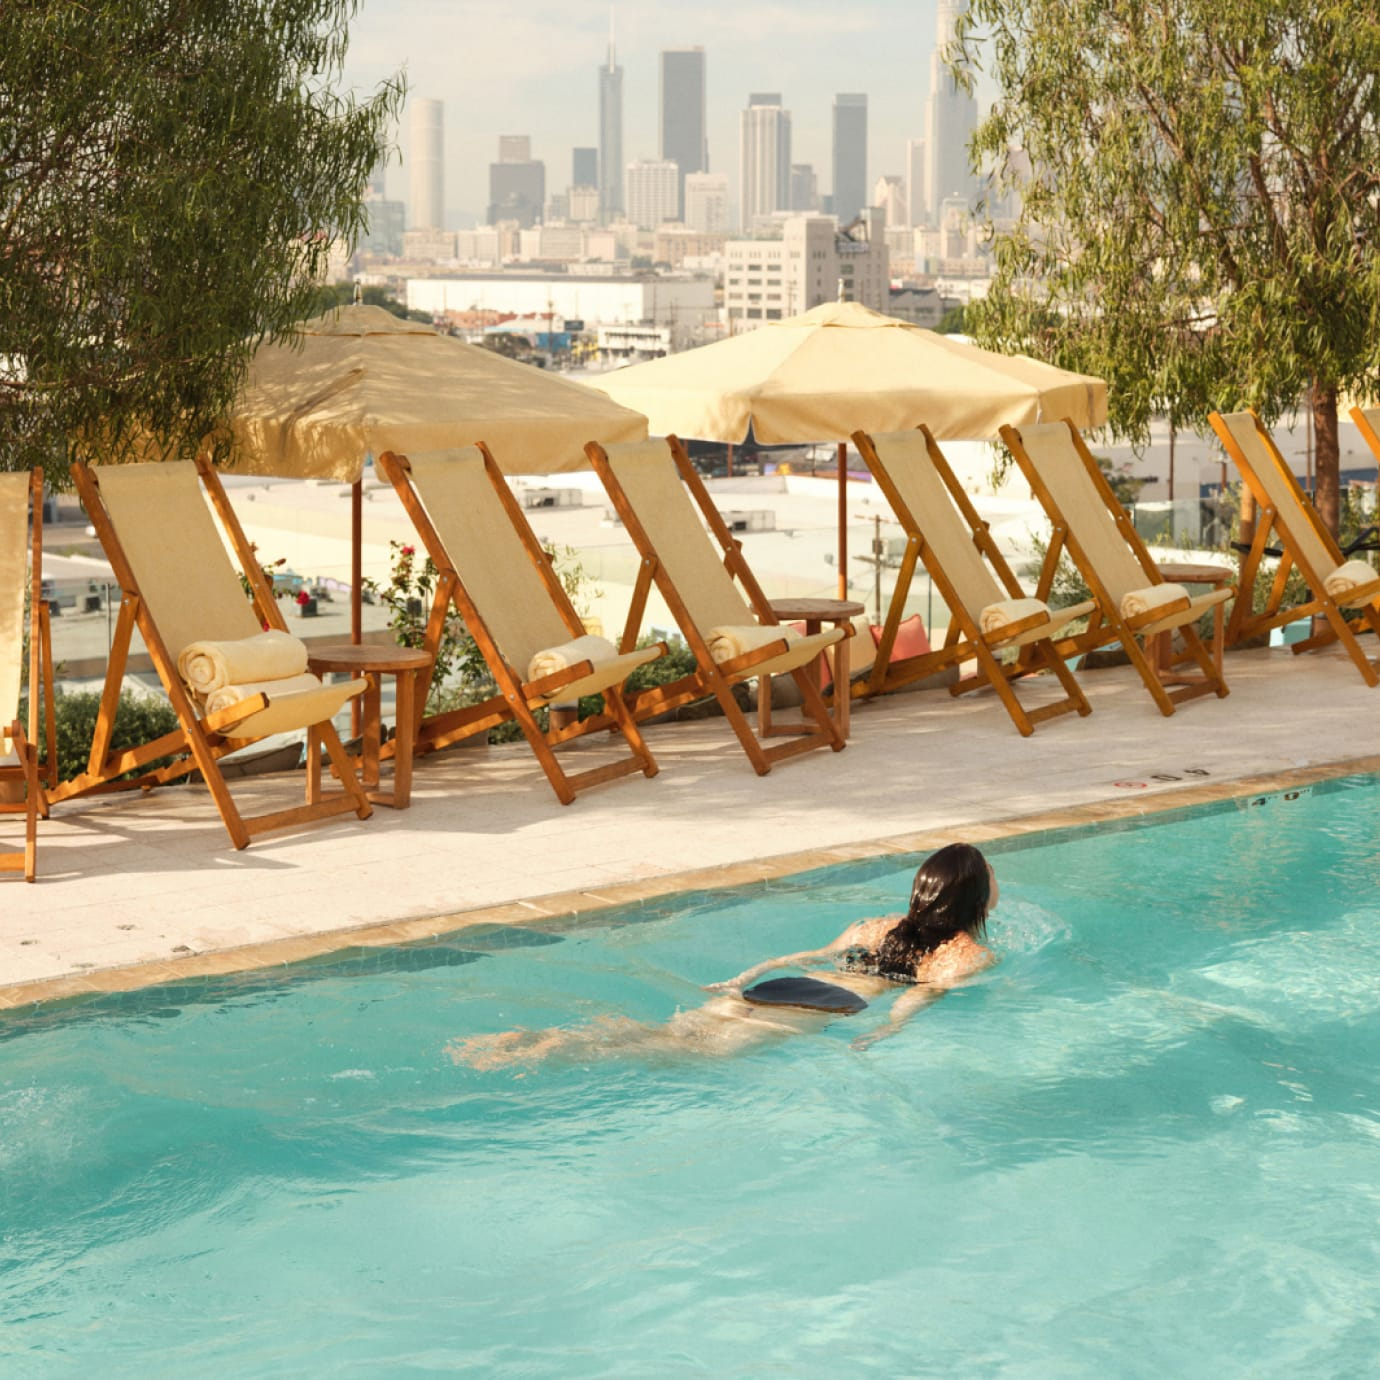 A woman swimming in a rooftop pool.